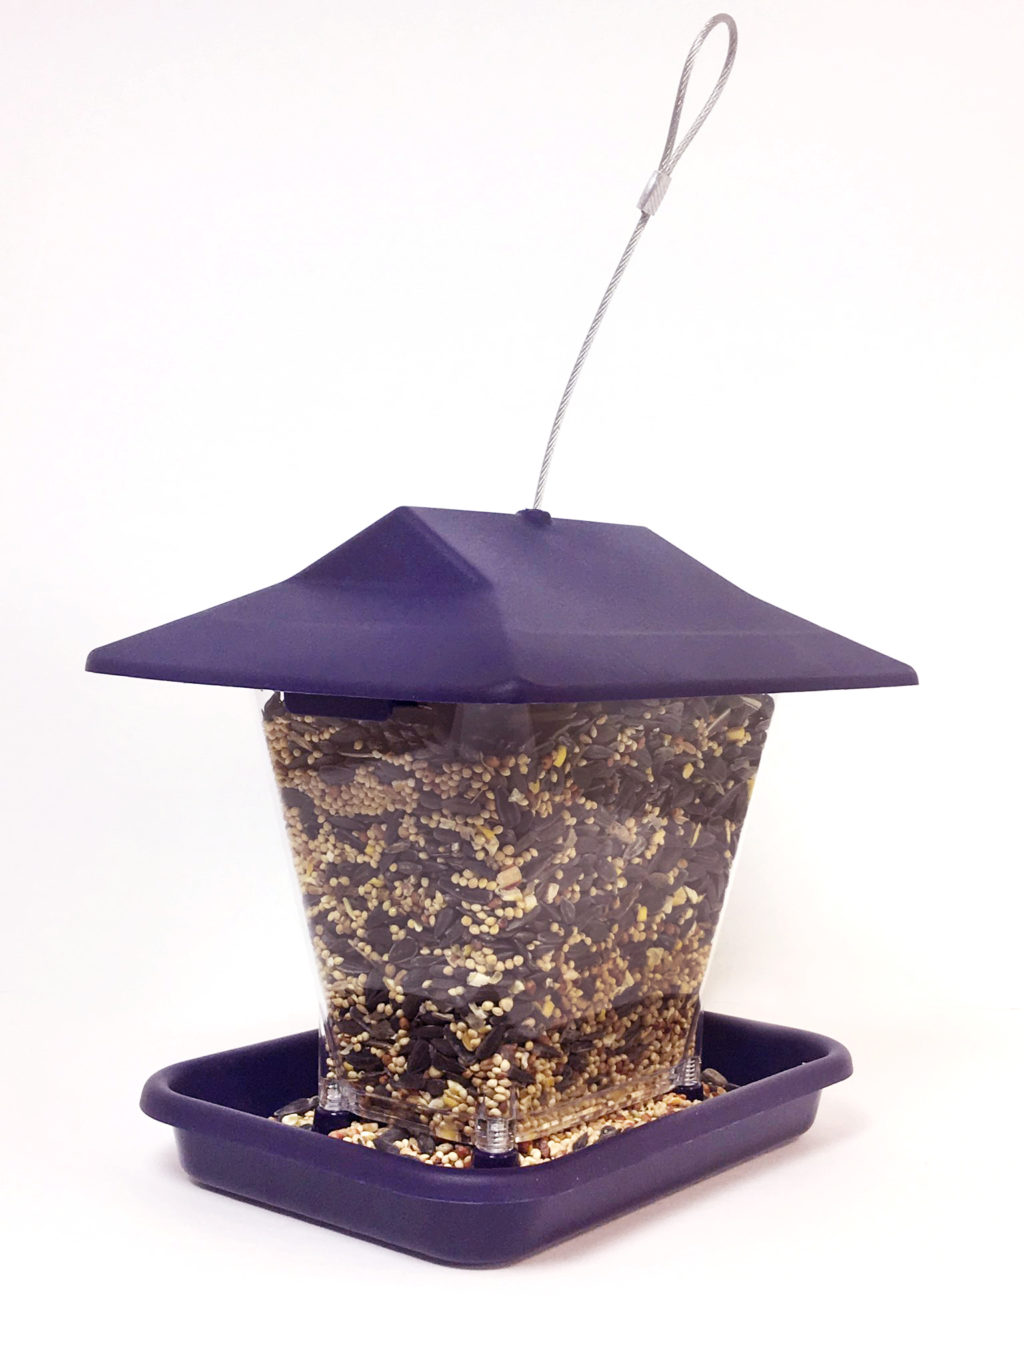 Stokes Select ranch feeder w/ seed